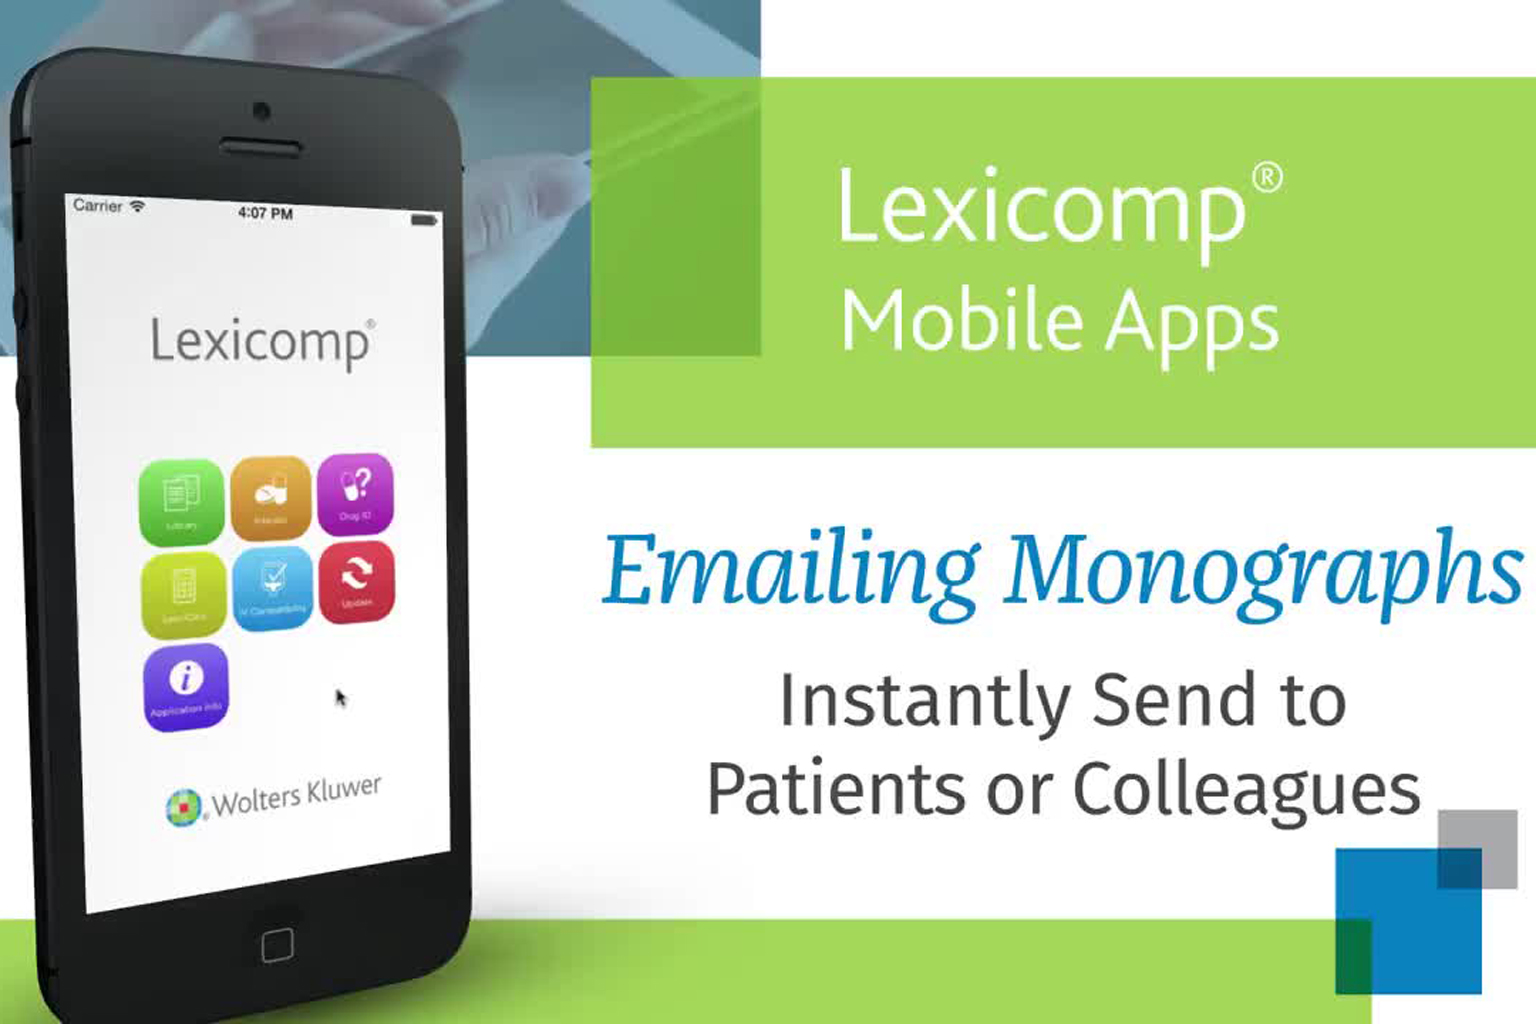 video screen - Lexicomp Mobile App Emailing a Monograph